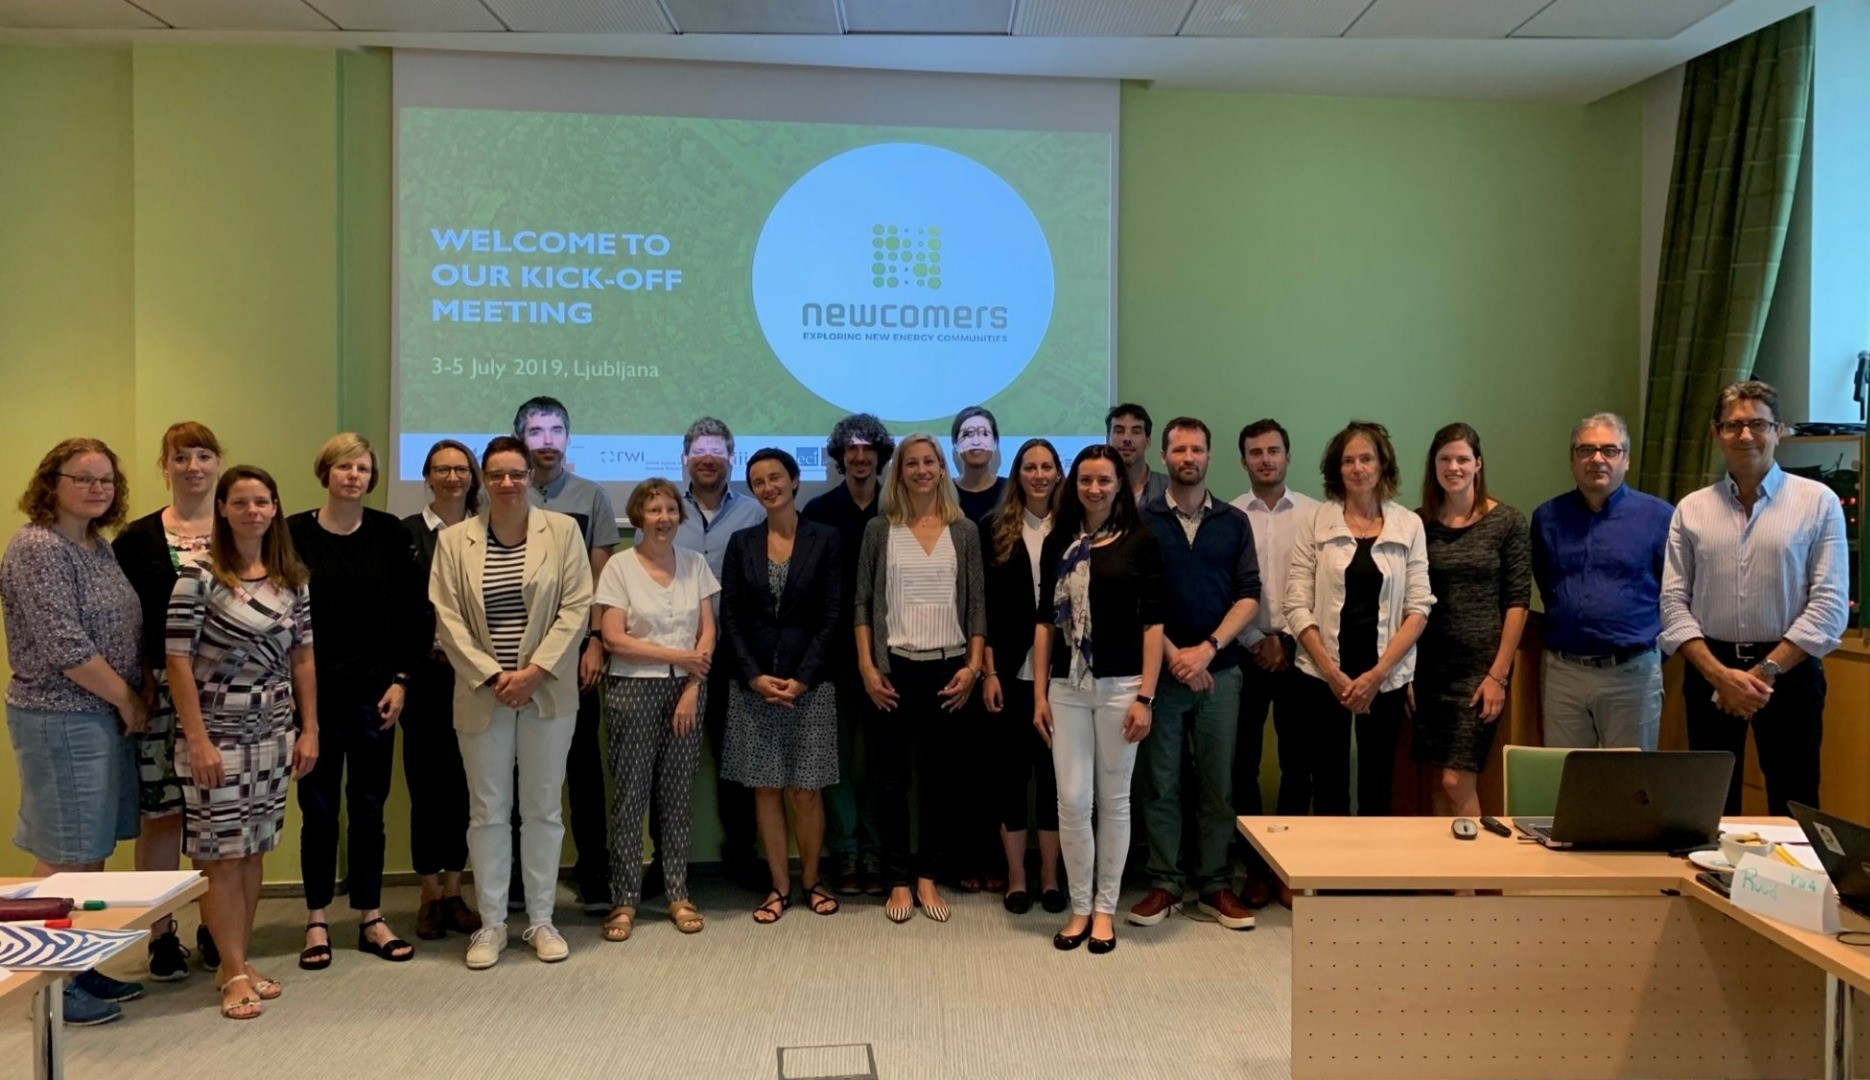 NEWCOMERS kick-off meeting in Ljubljana